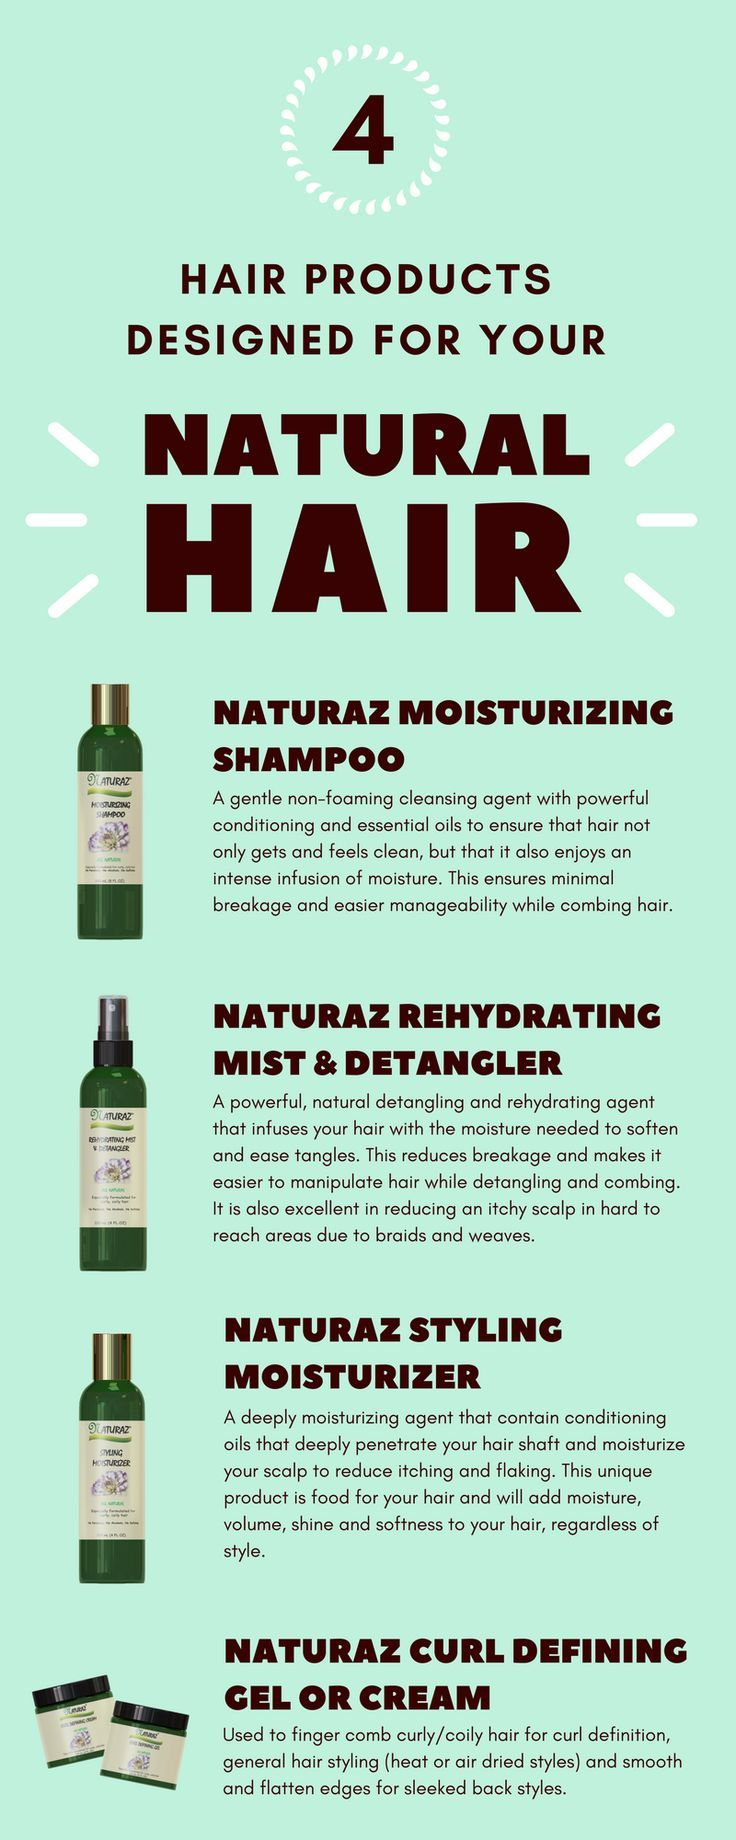 At Naturaz, we understand the challenges with curly and tightly coiled hair - particularly how vulnerable it is to dryness and breakage. We apply science and research to create innovative solutions designed to protect it from the elements, effectively manage it, and sustain its beauty. http://www.naturaz.com/blog/naturaz-101/